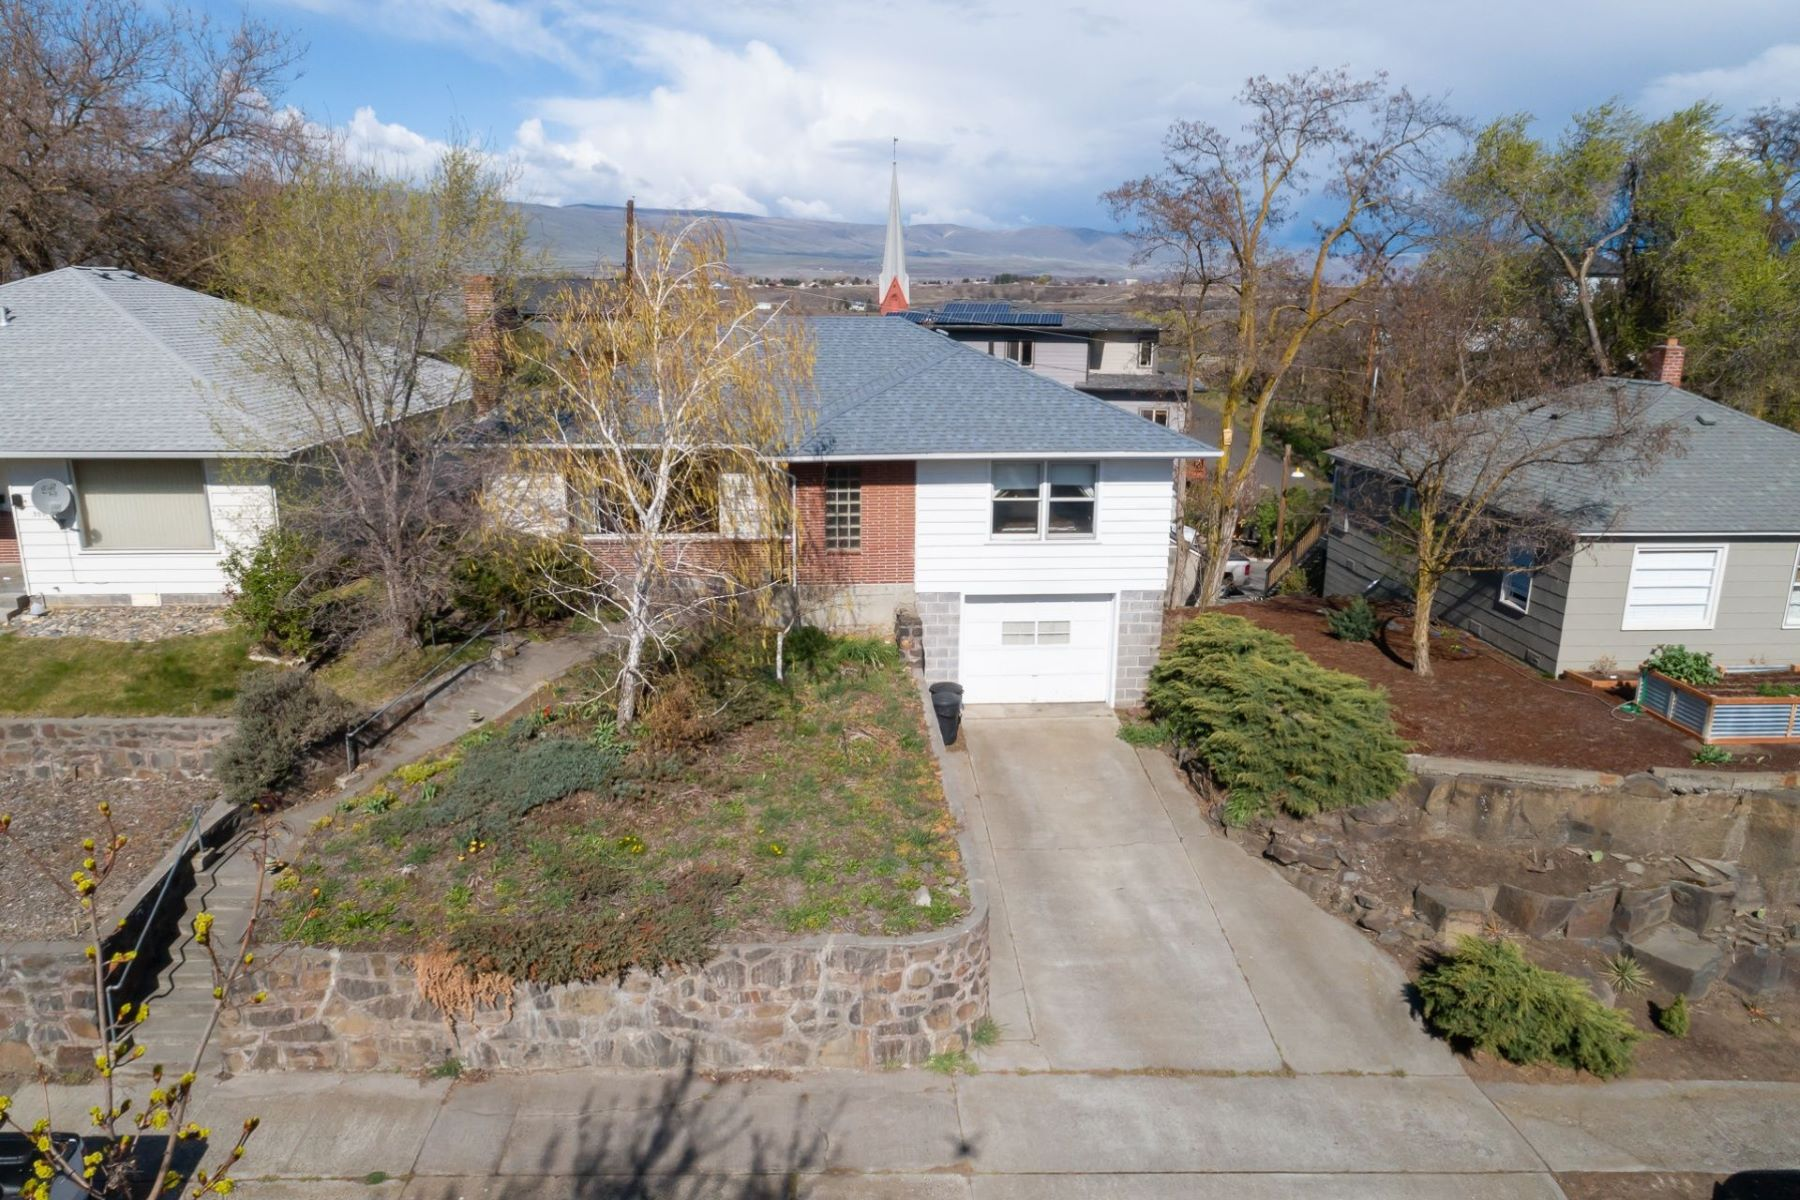 Other Residential Homes for Active at 307 W 6TH The Dalles, OR 97058 307 6th St The Dalles, Oregon 97058 United States